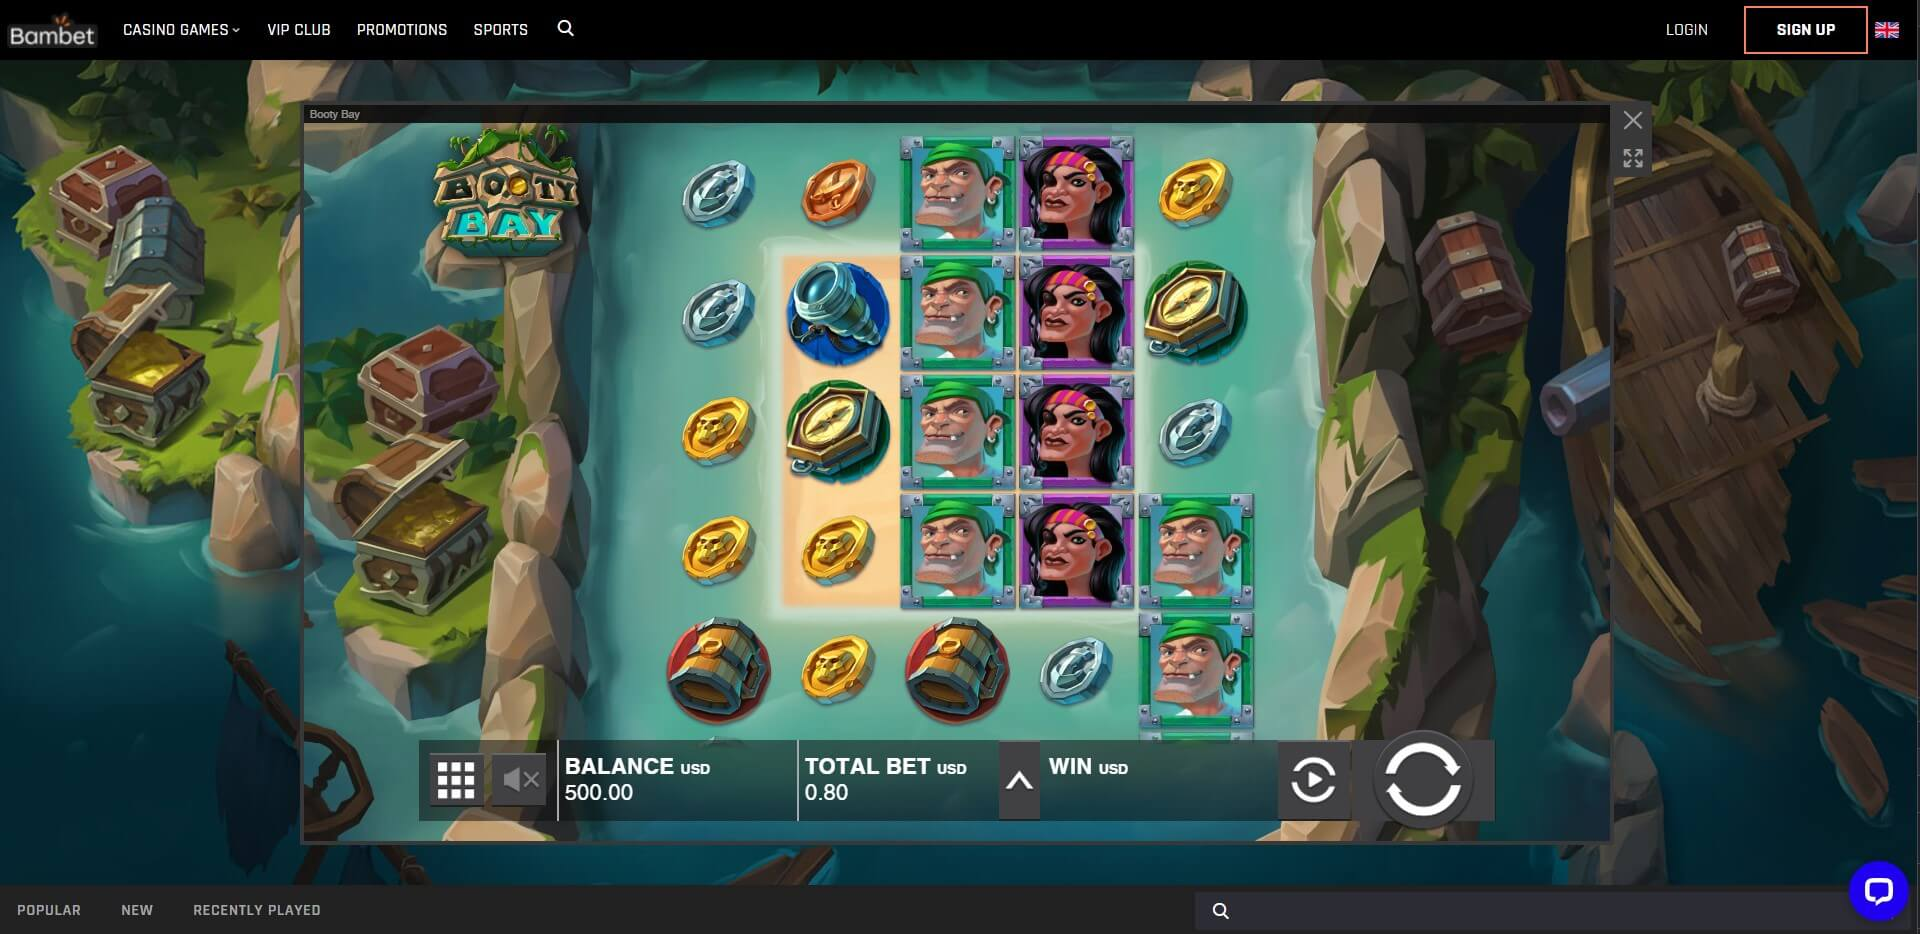 Game Play at Bambet Casino